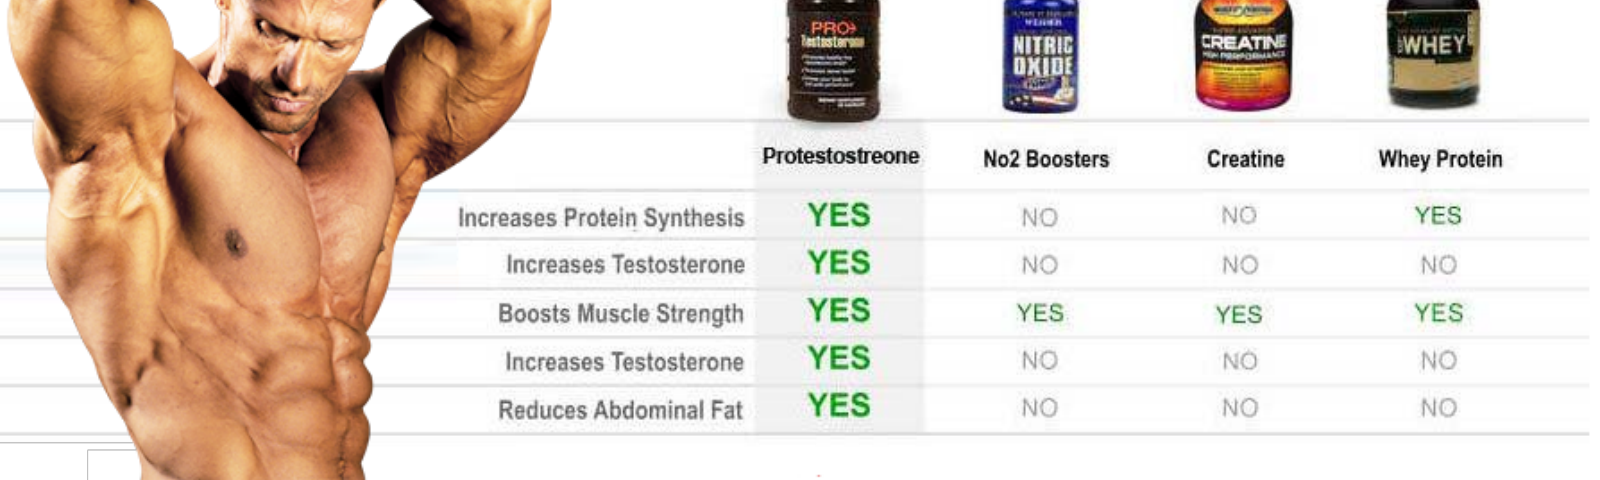 pro-testosterone-reviews